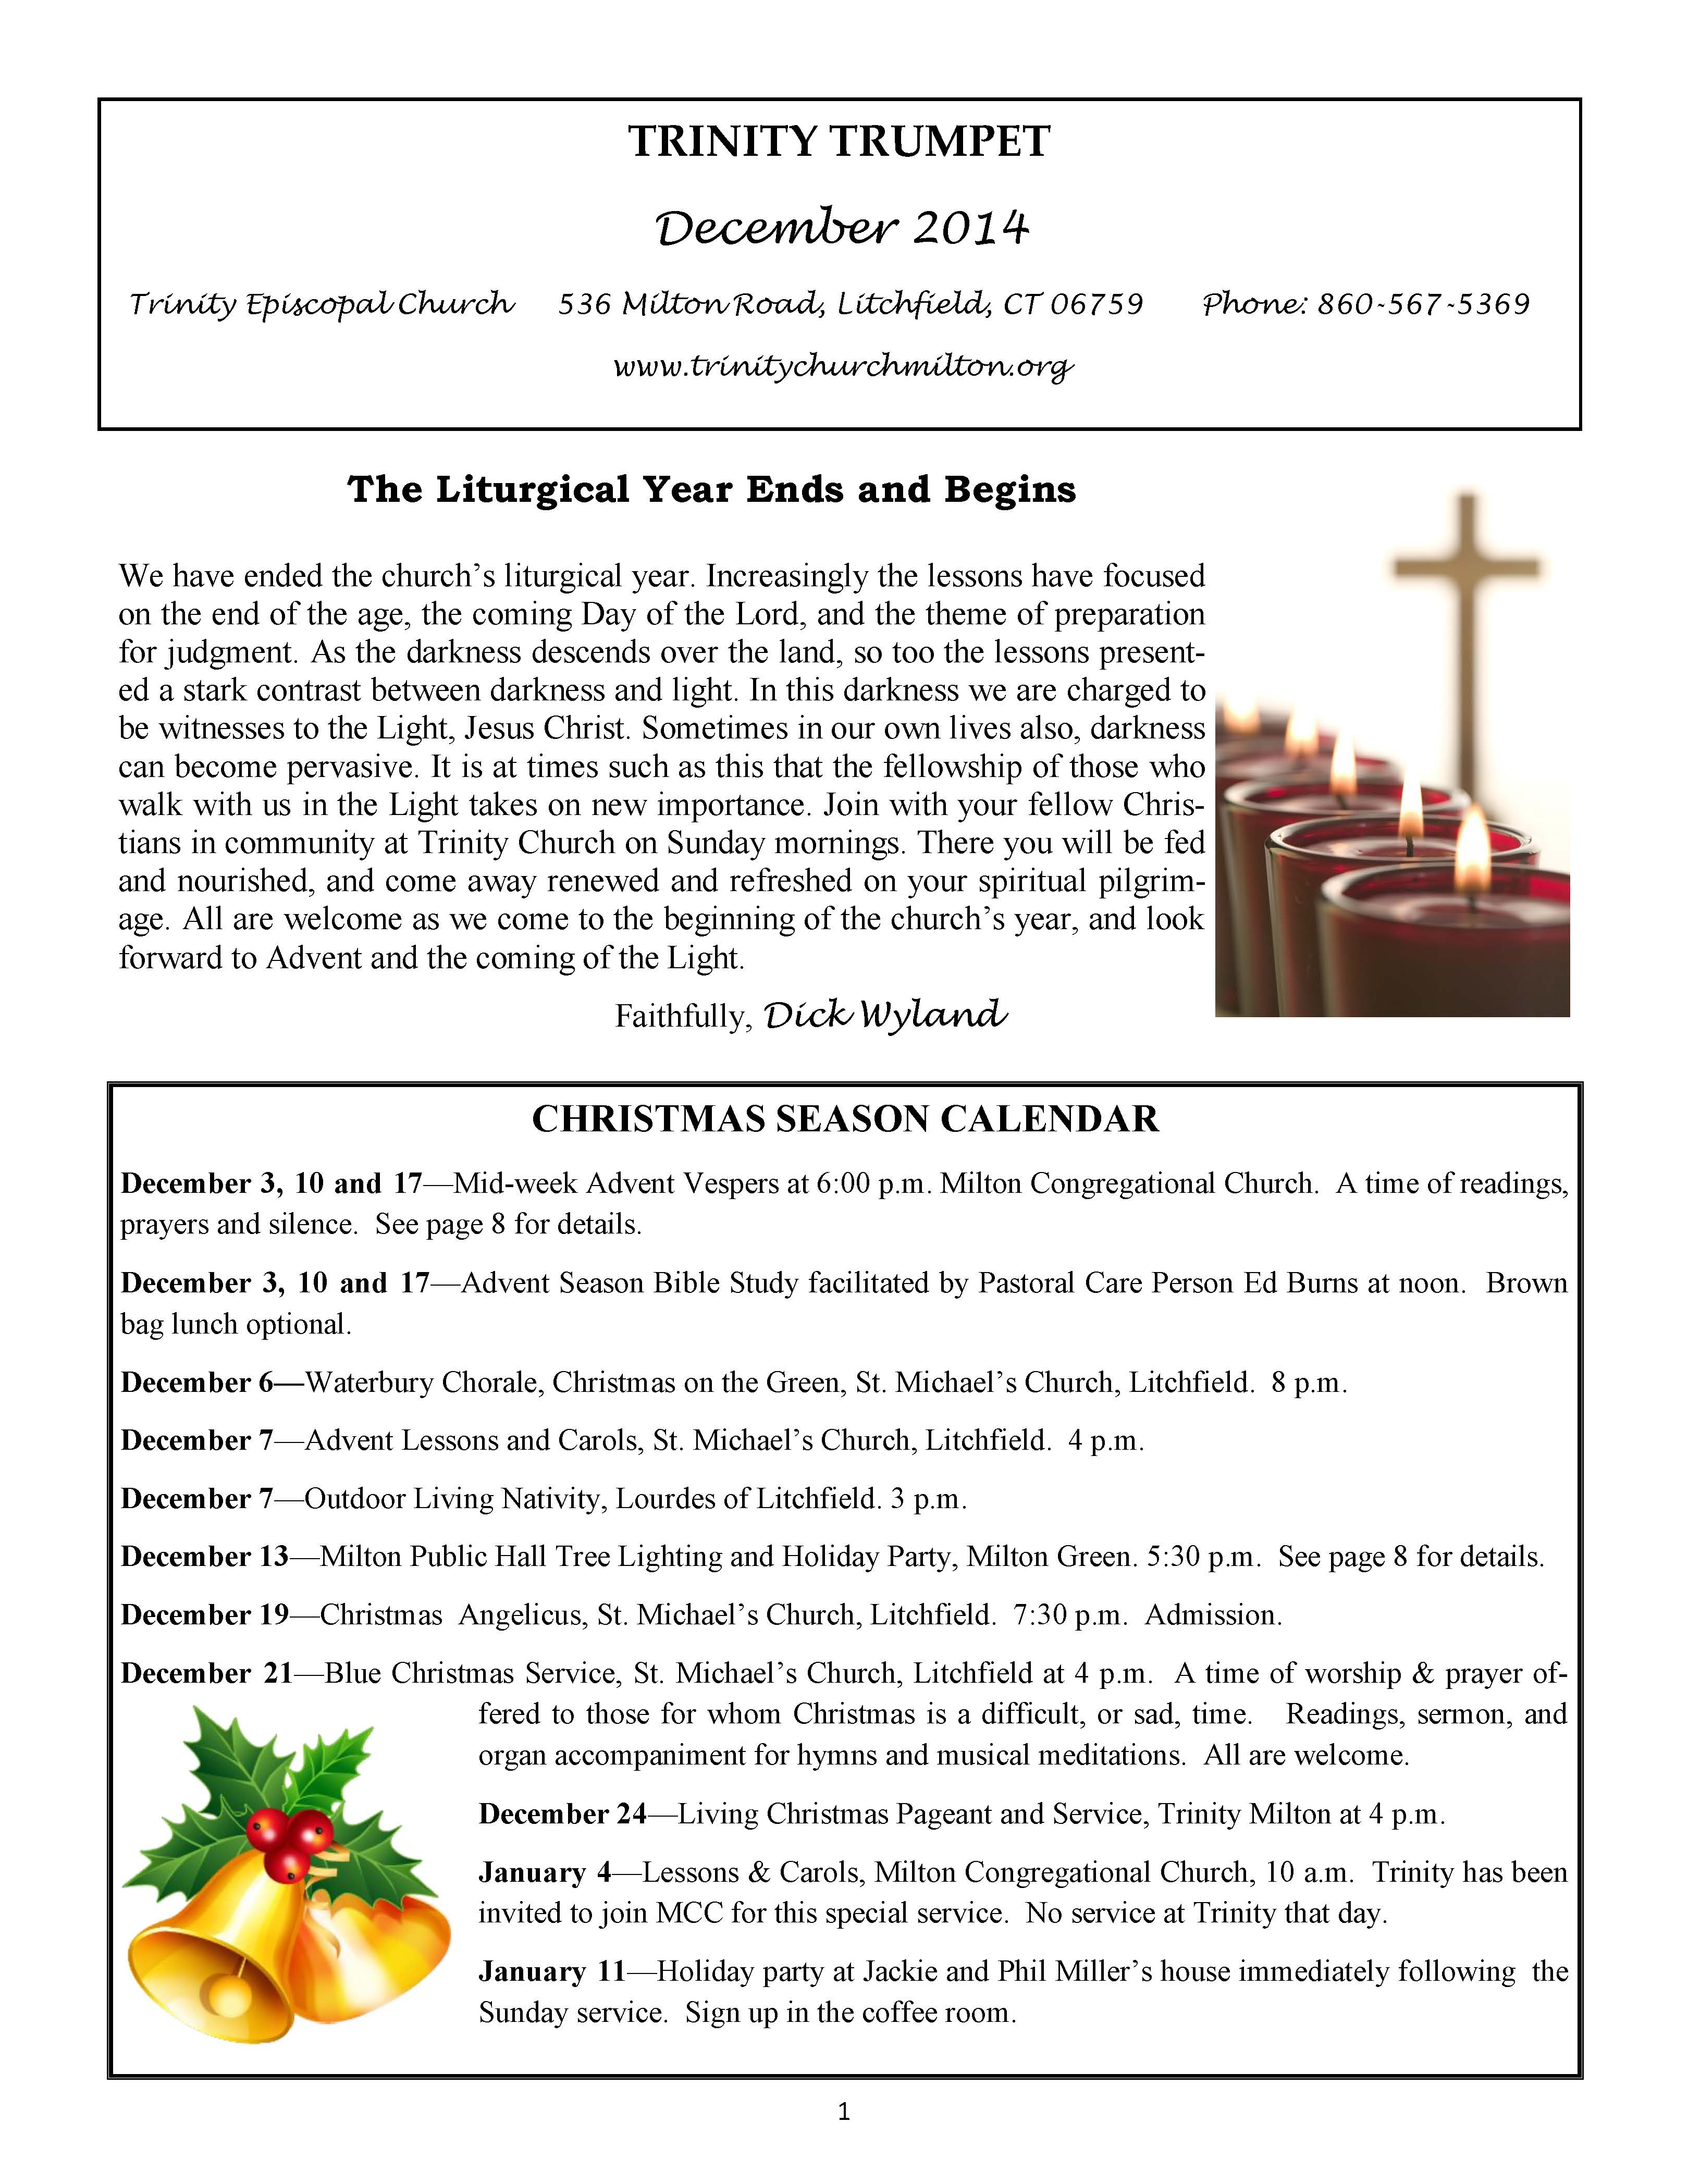 Trinity Trumpet December 2014_Page_1